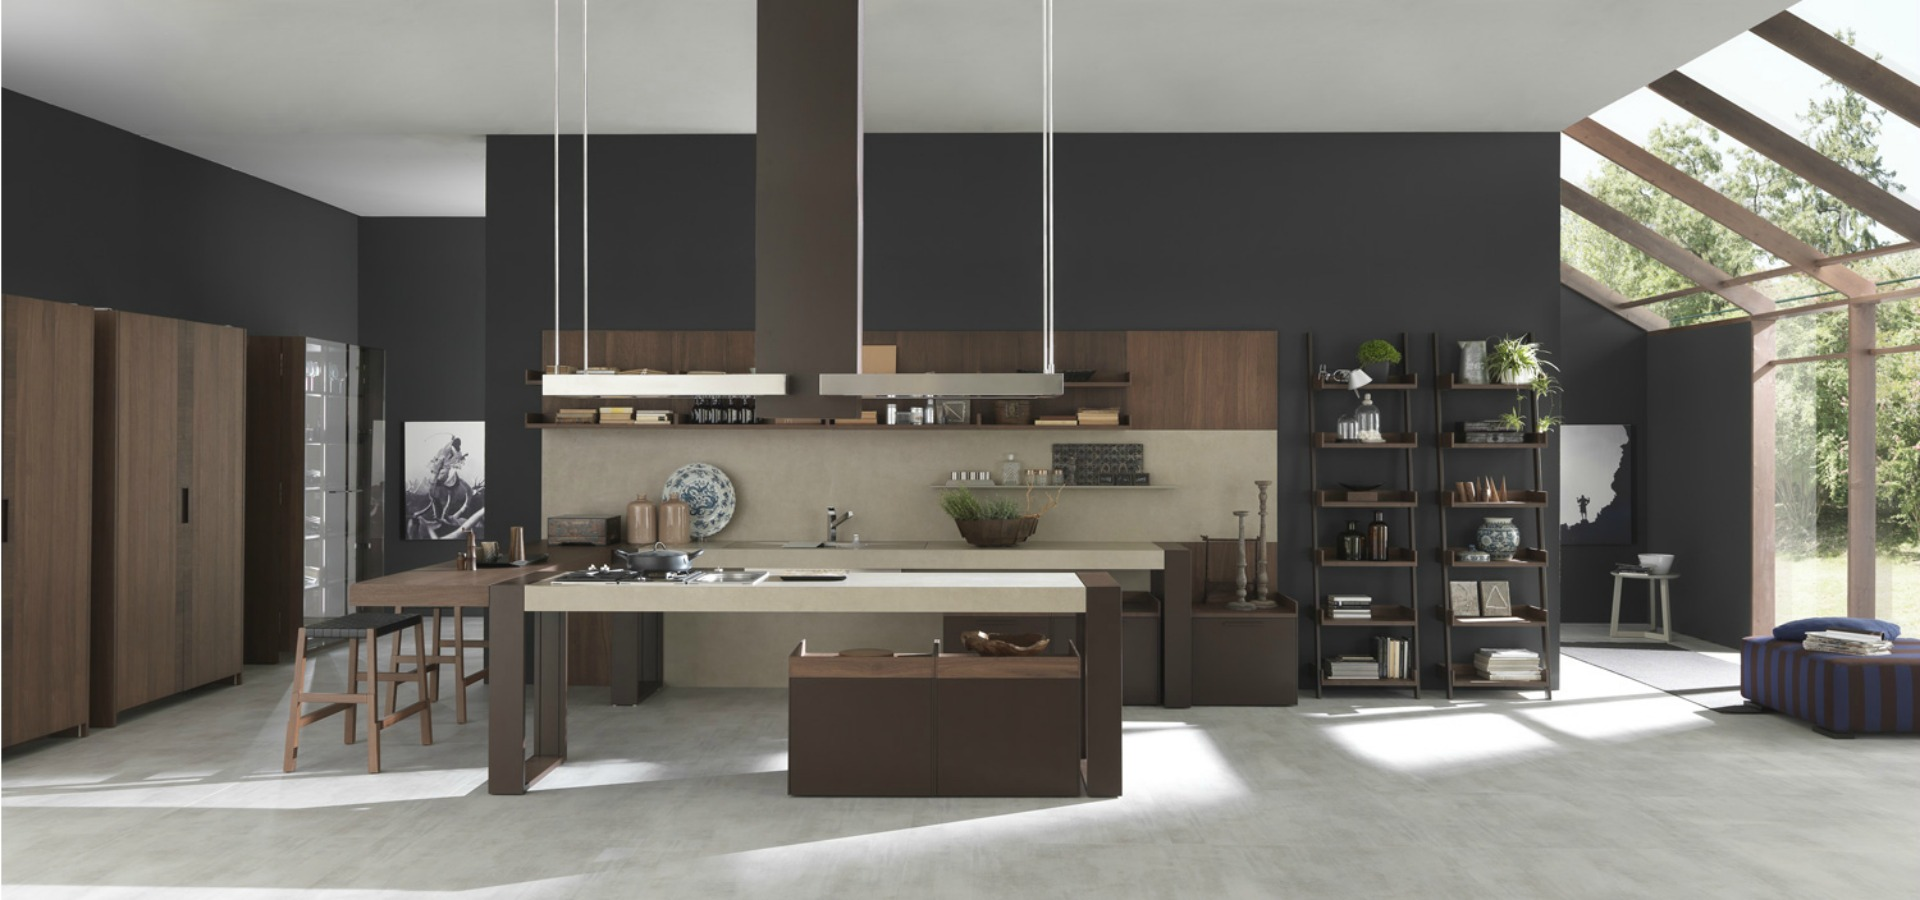 Pedini Seattle Is An Owner Operated Business With Extensive Kitchen Design  And Installation Experience U2014 Guaranteeing The Highest Standards Of Client  ... Part 38